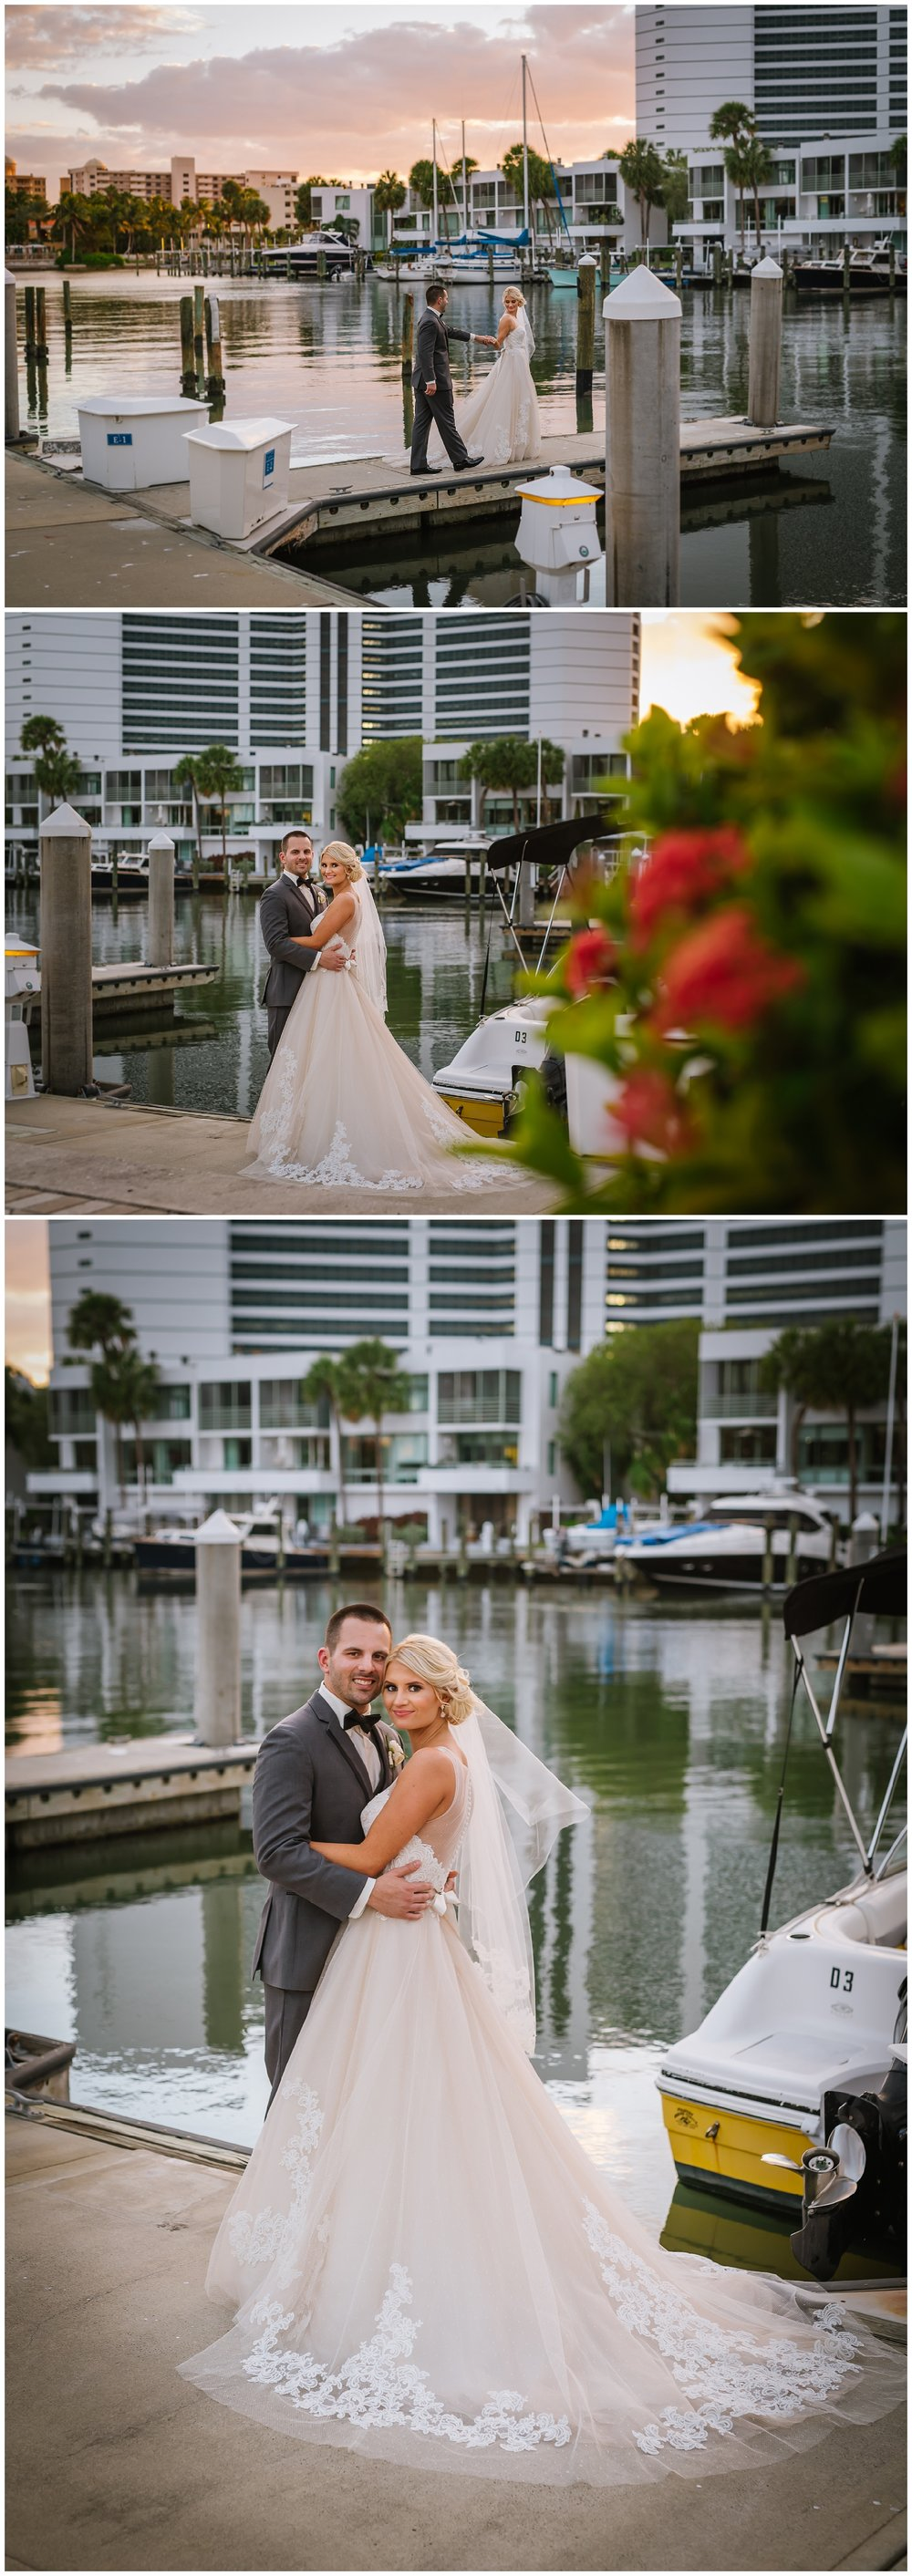 Sarasota-wedding-photographer-hyatt-regency-blush_0050.jpg